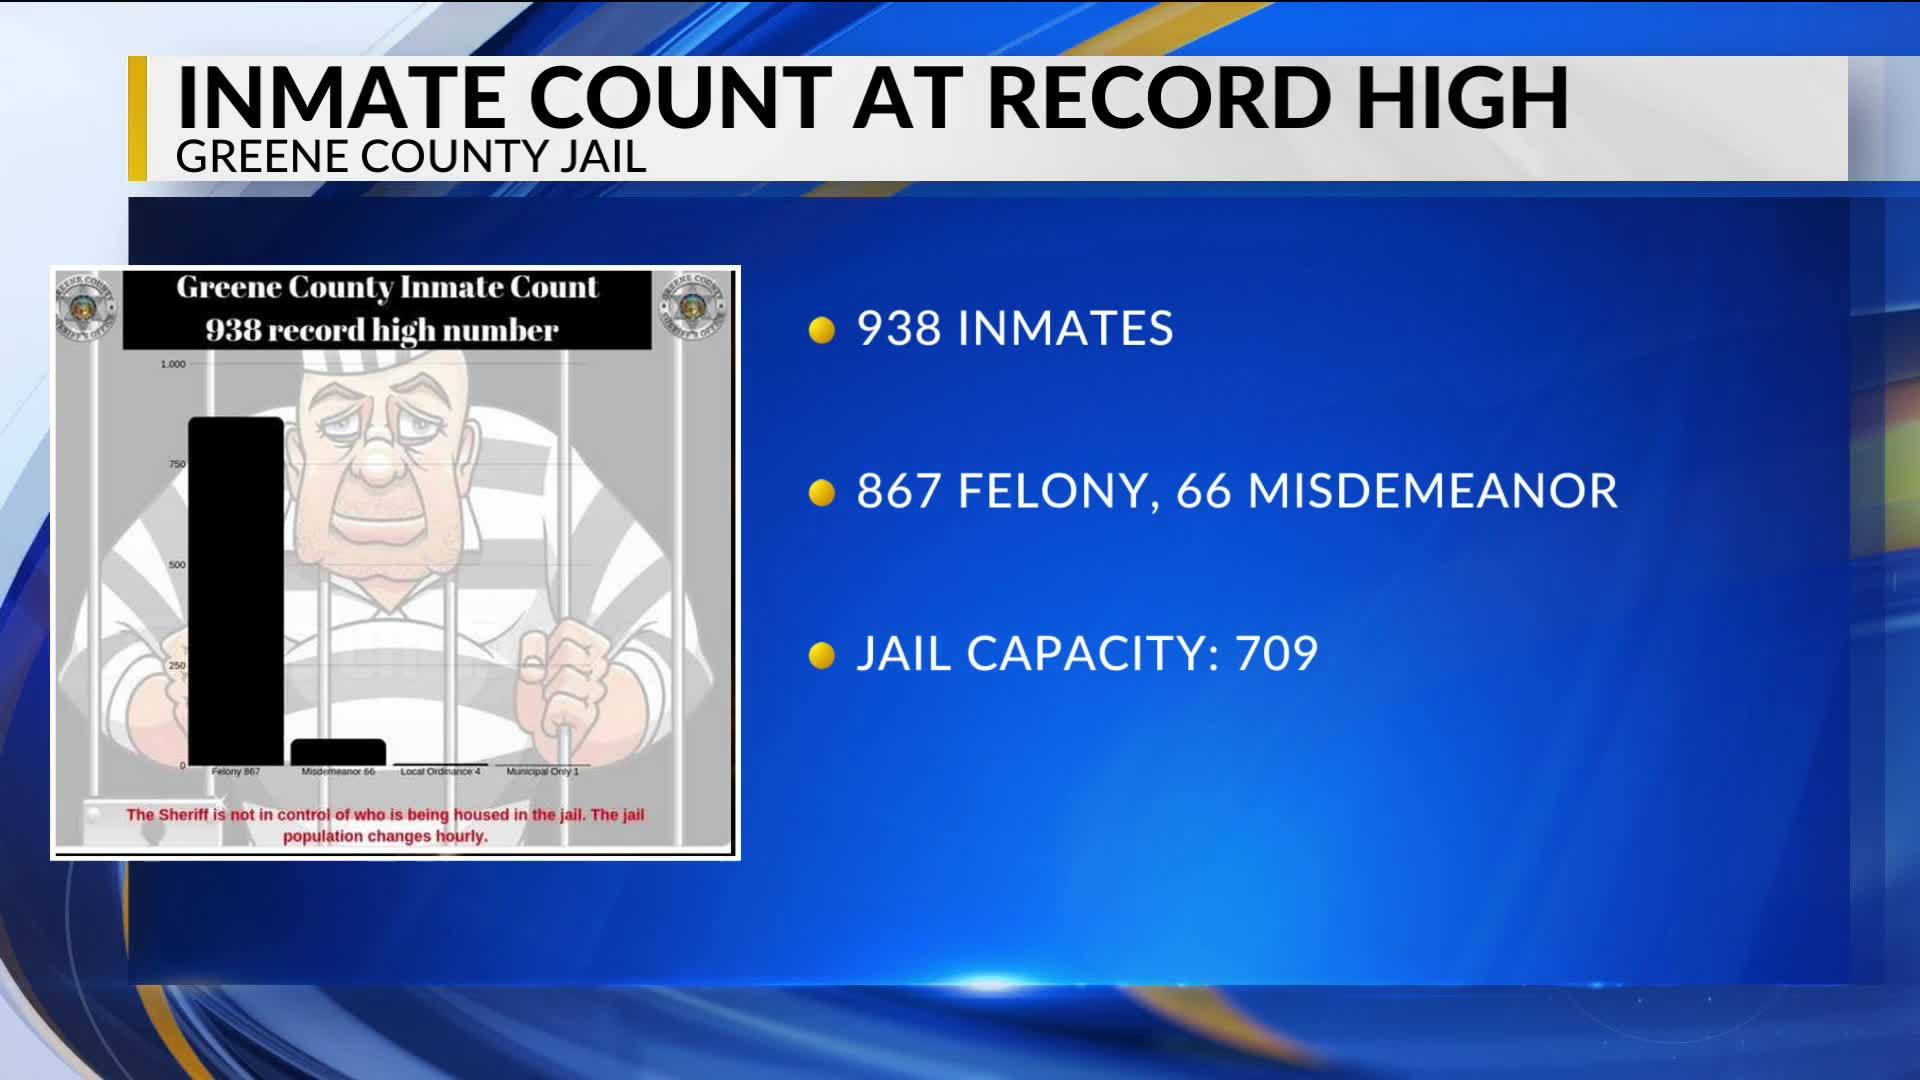 Green County Jail reaches record high number of inmates